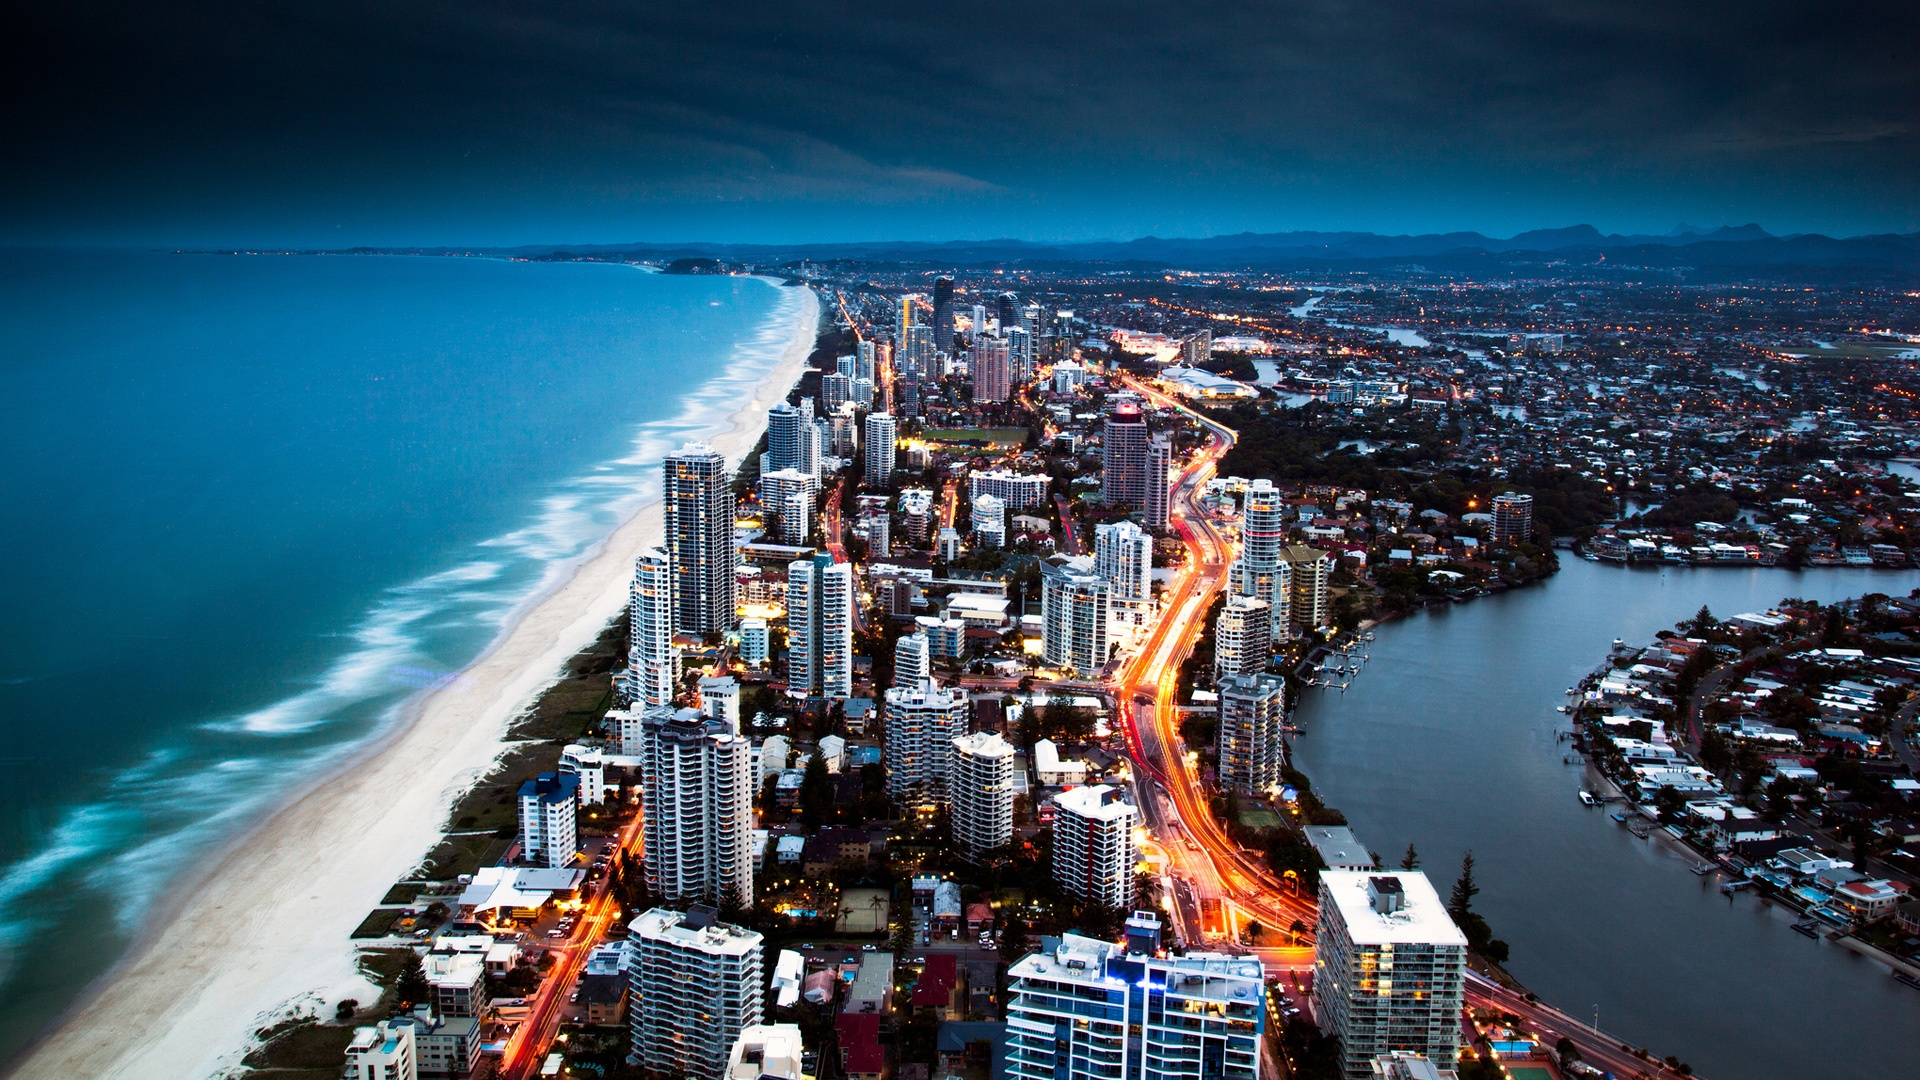 Awesome-Gold-Coast-Australia-1920x1080-Need-iPhone-S-Plus-Background-for-IPhone-wallpaper-wp3402744